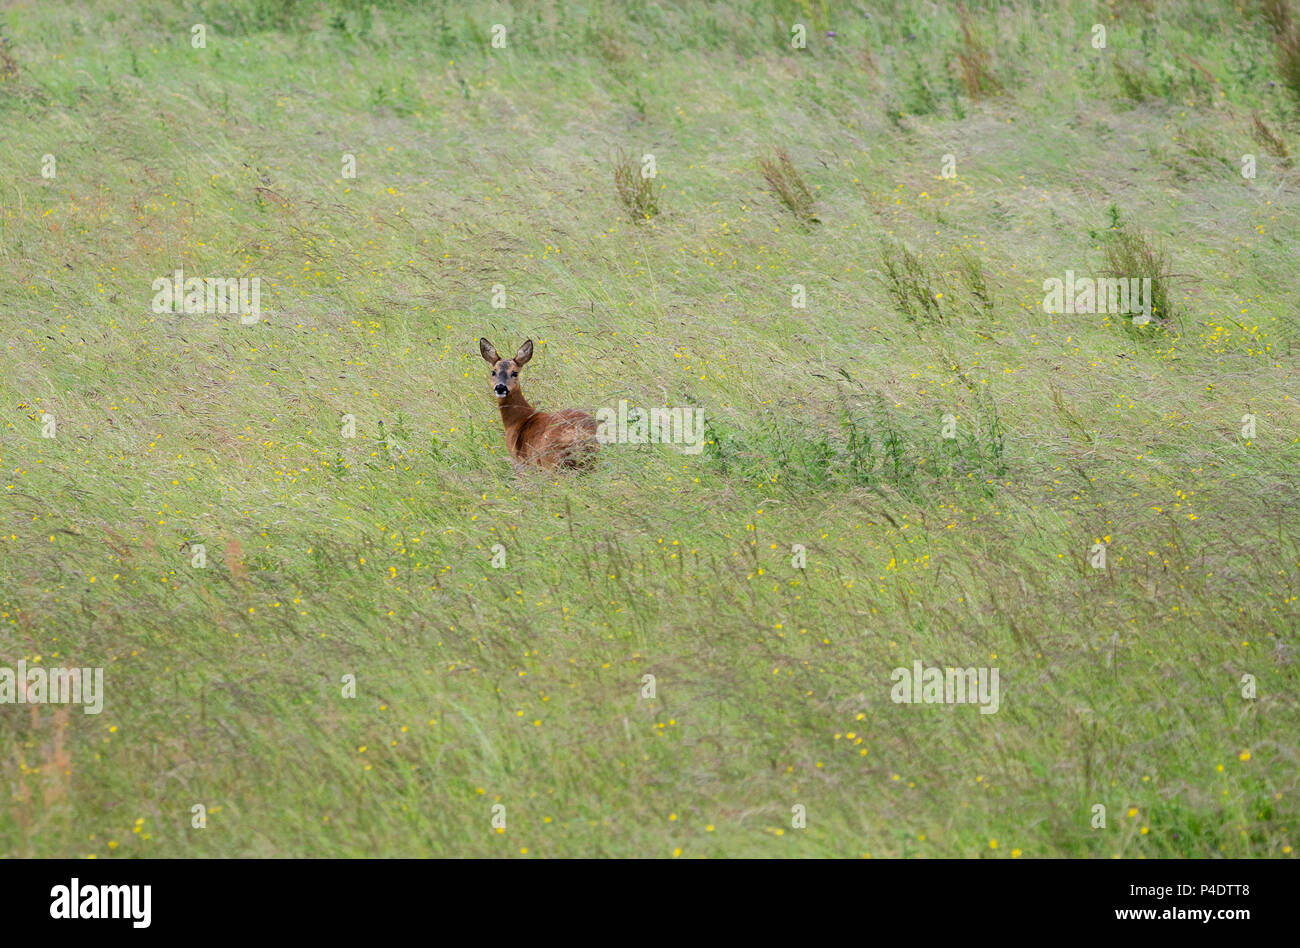 a wild roe deer doe walking through a field of buttercups, looking over towards the camera - Stock Image